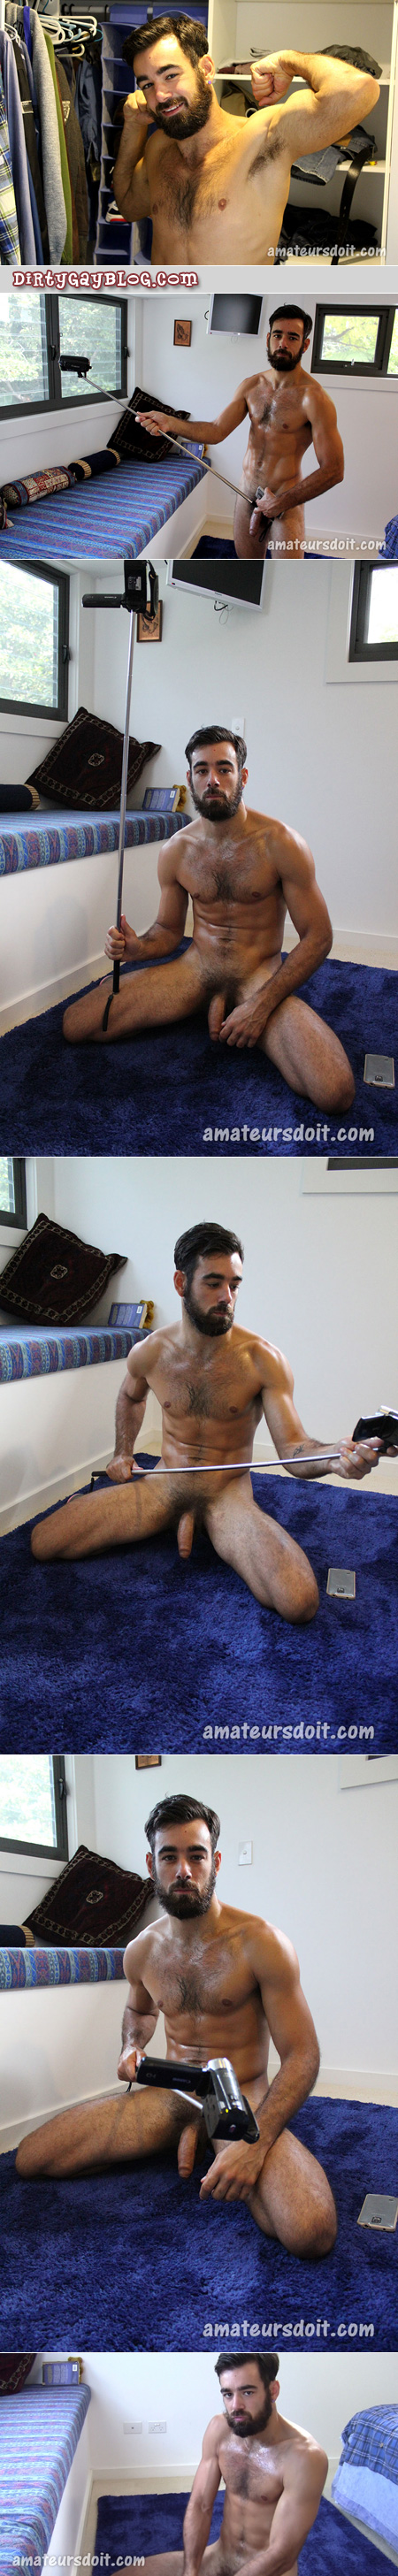 Hairy hunk setting up his self-stick to record himself masturbating.